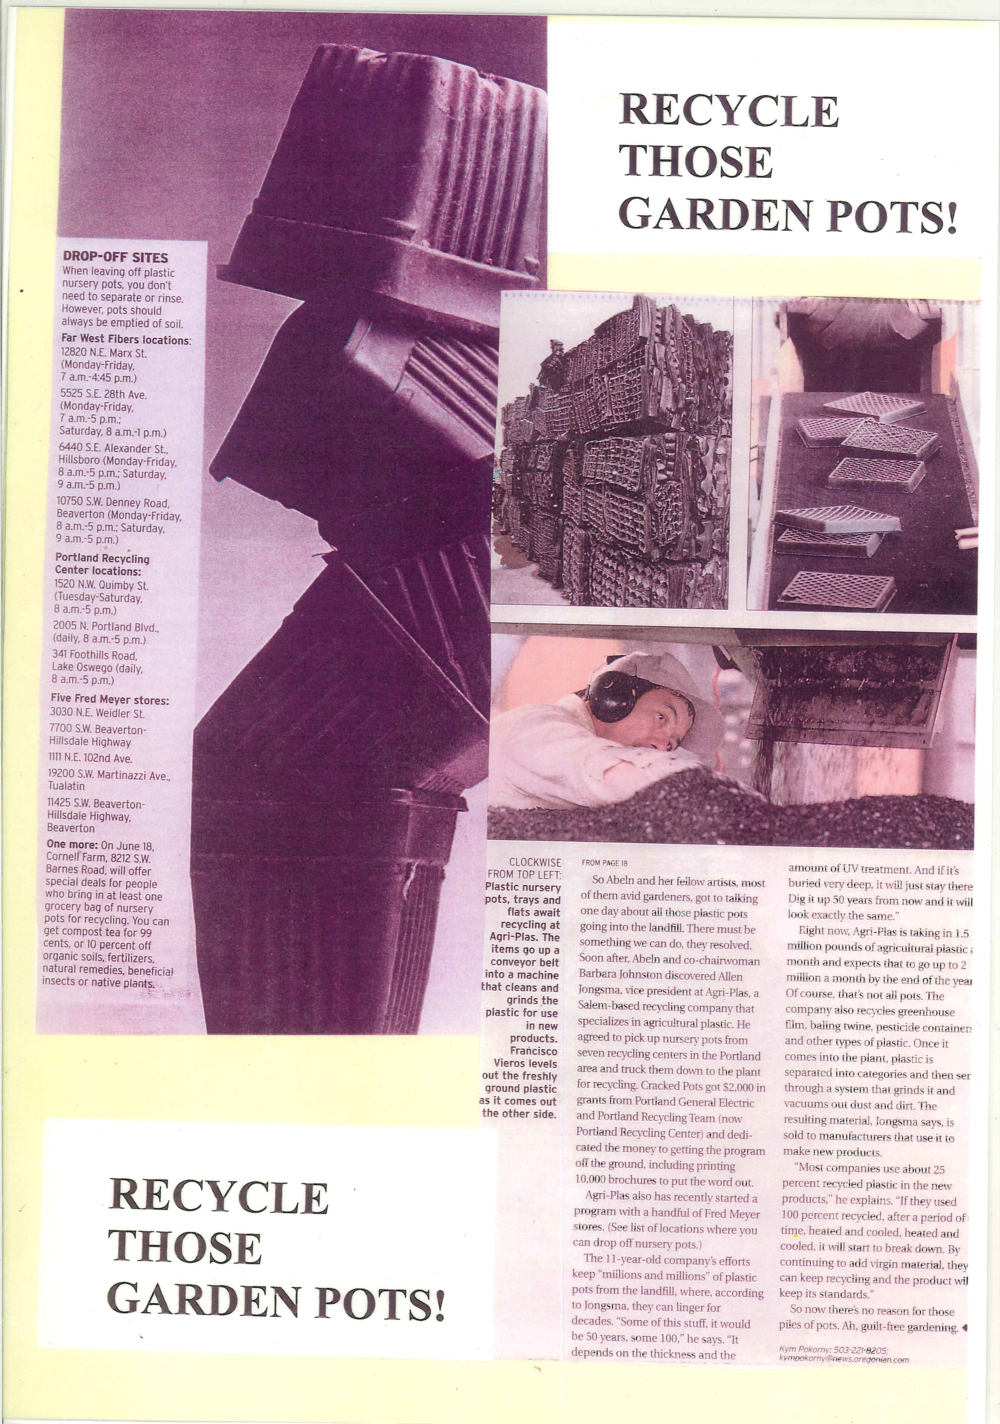 2005 Oregonian Article Part 2 - Recycle Those Garden Pots!